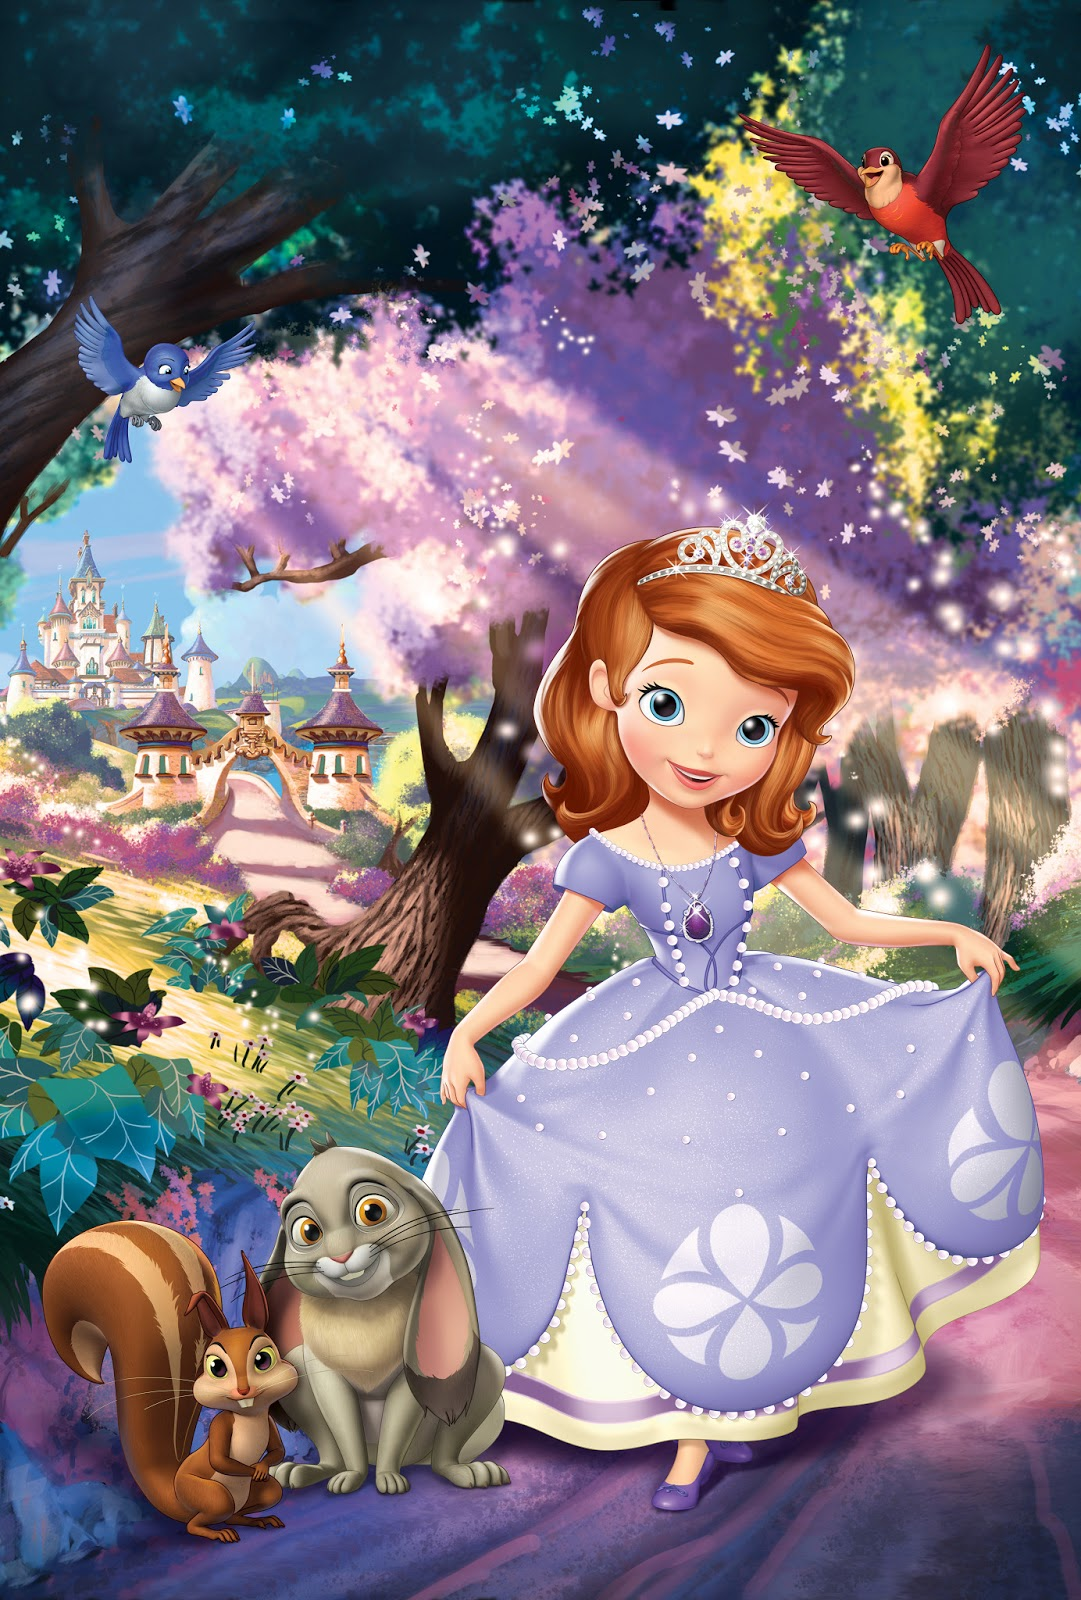 1000 images about sofia the first on pinterest sofia - Image princesse sofia ...